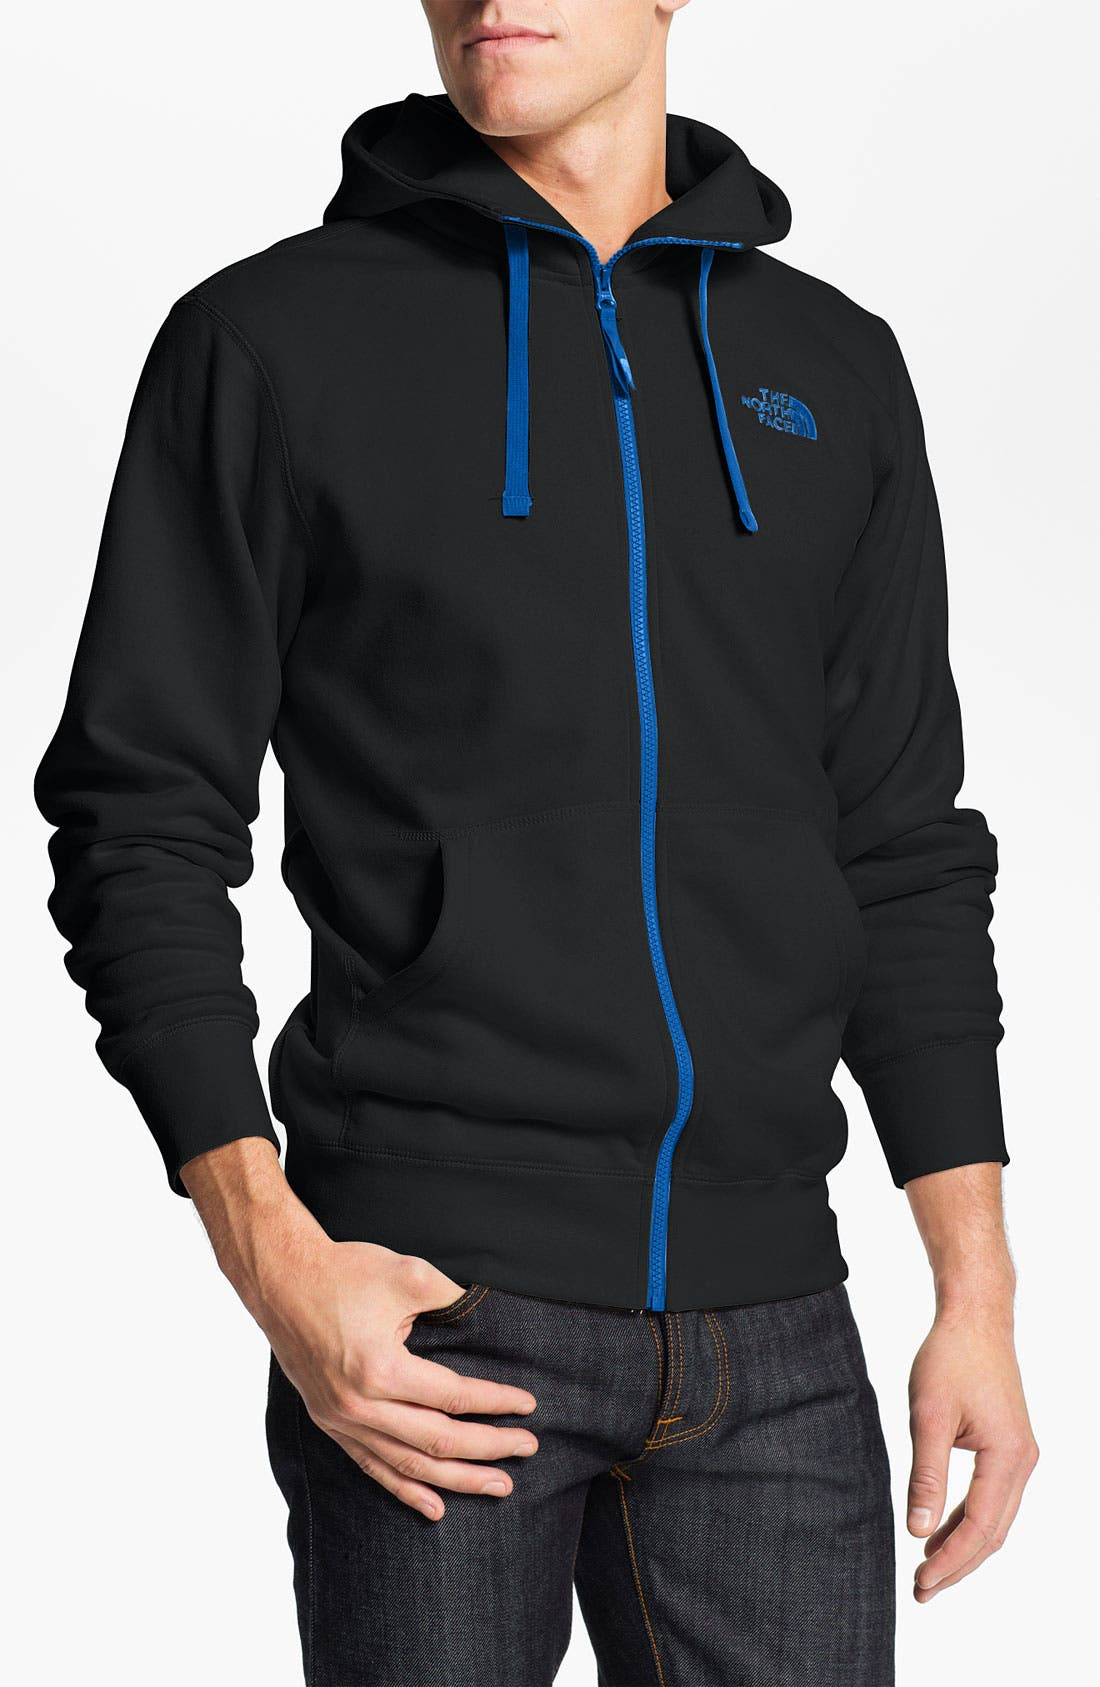 Alternate Image 1 Selected - The North Face 'Rearview' Full Zip Hoodie